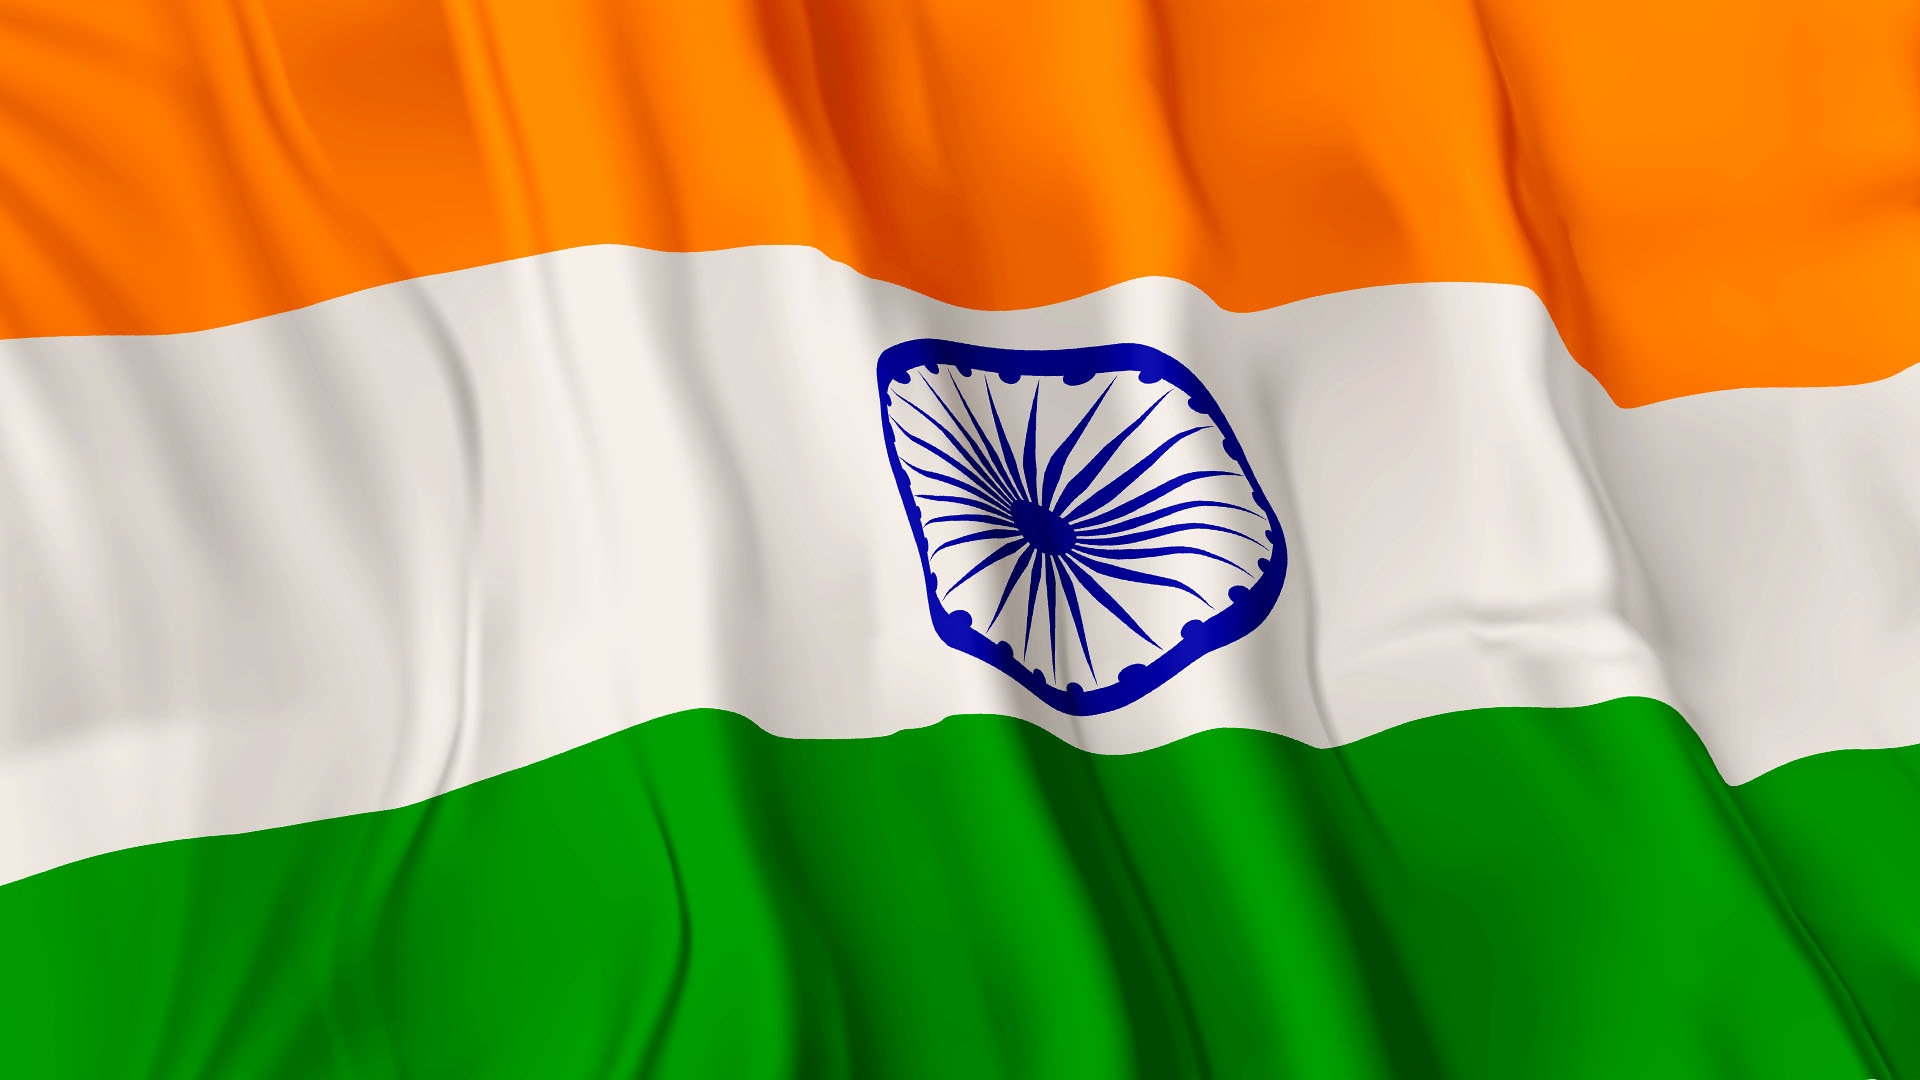 flag indian hd india wallpapers tricolour 4k desktop waving 1920 1080 resolution atulhost pic 1366 mobiles resolutions popular hdwallpapers tablets